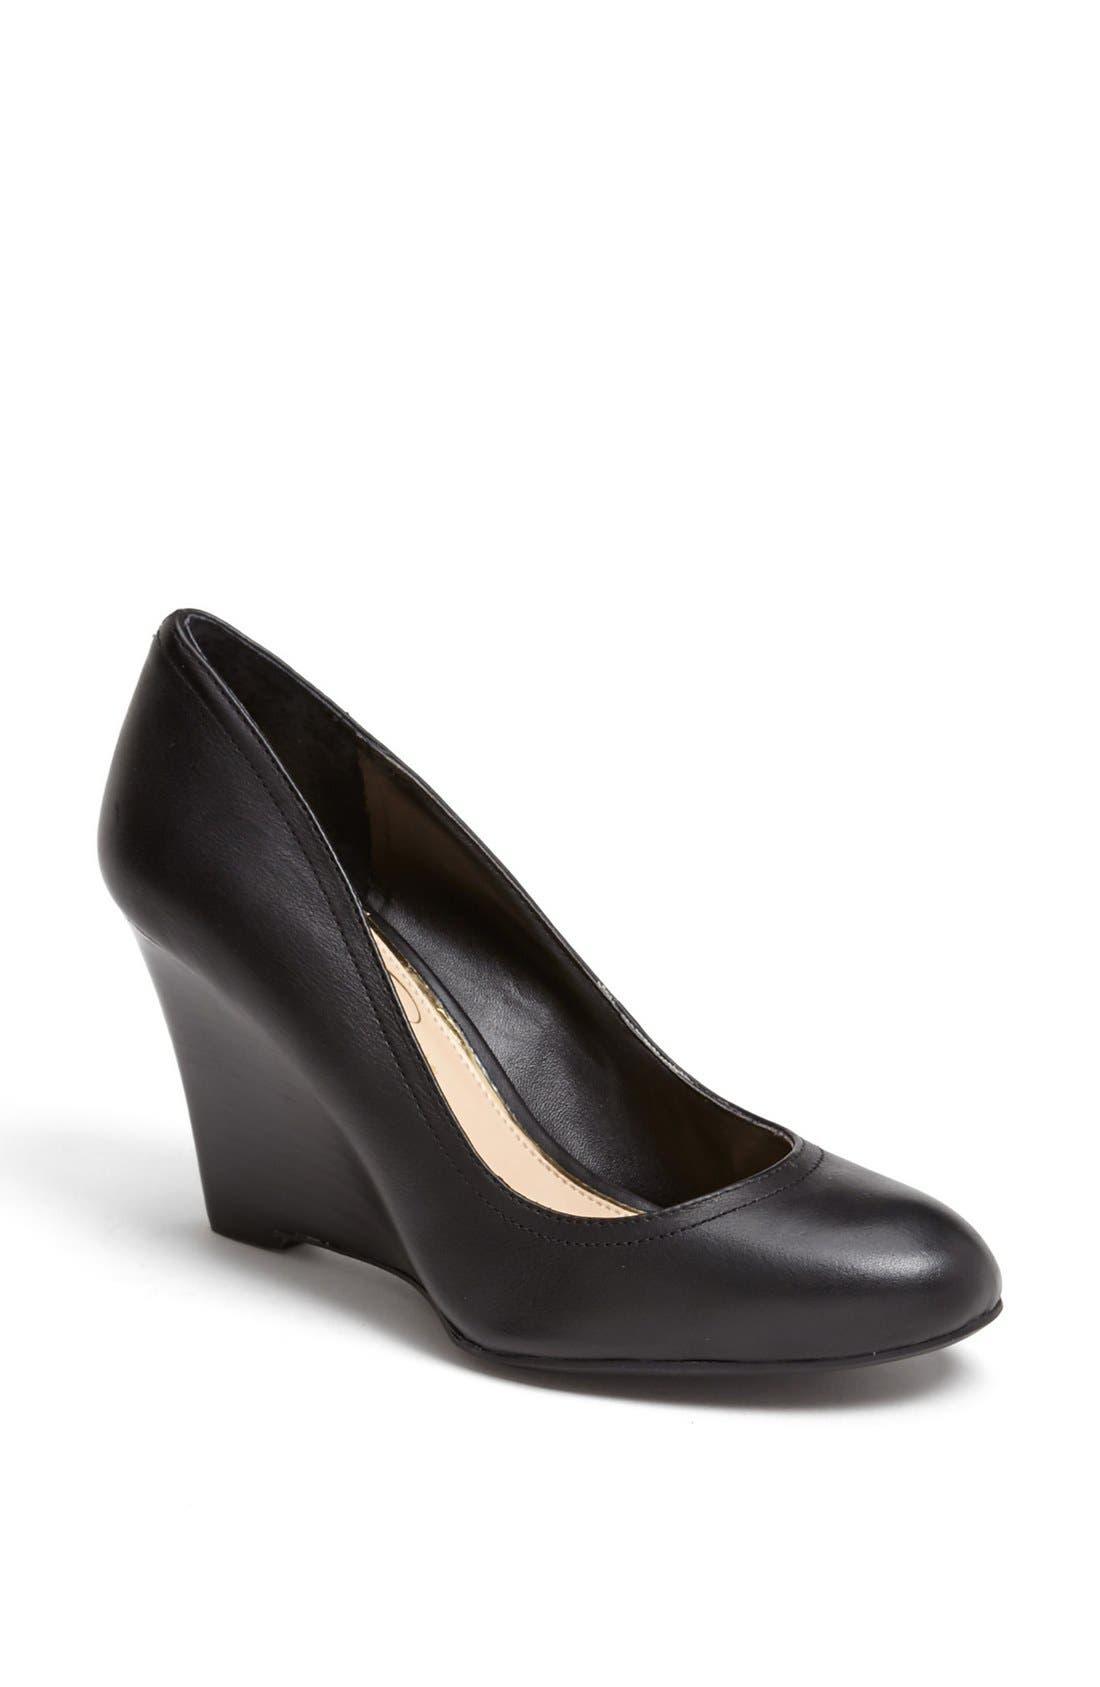 Alternate Image 1 Selected - Jessica Simpson 'Capri' Pump